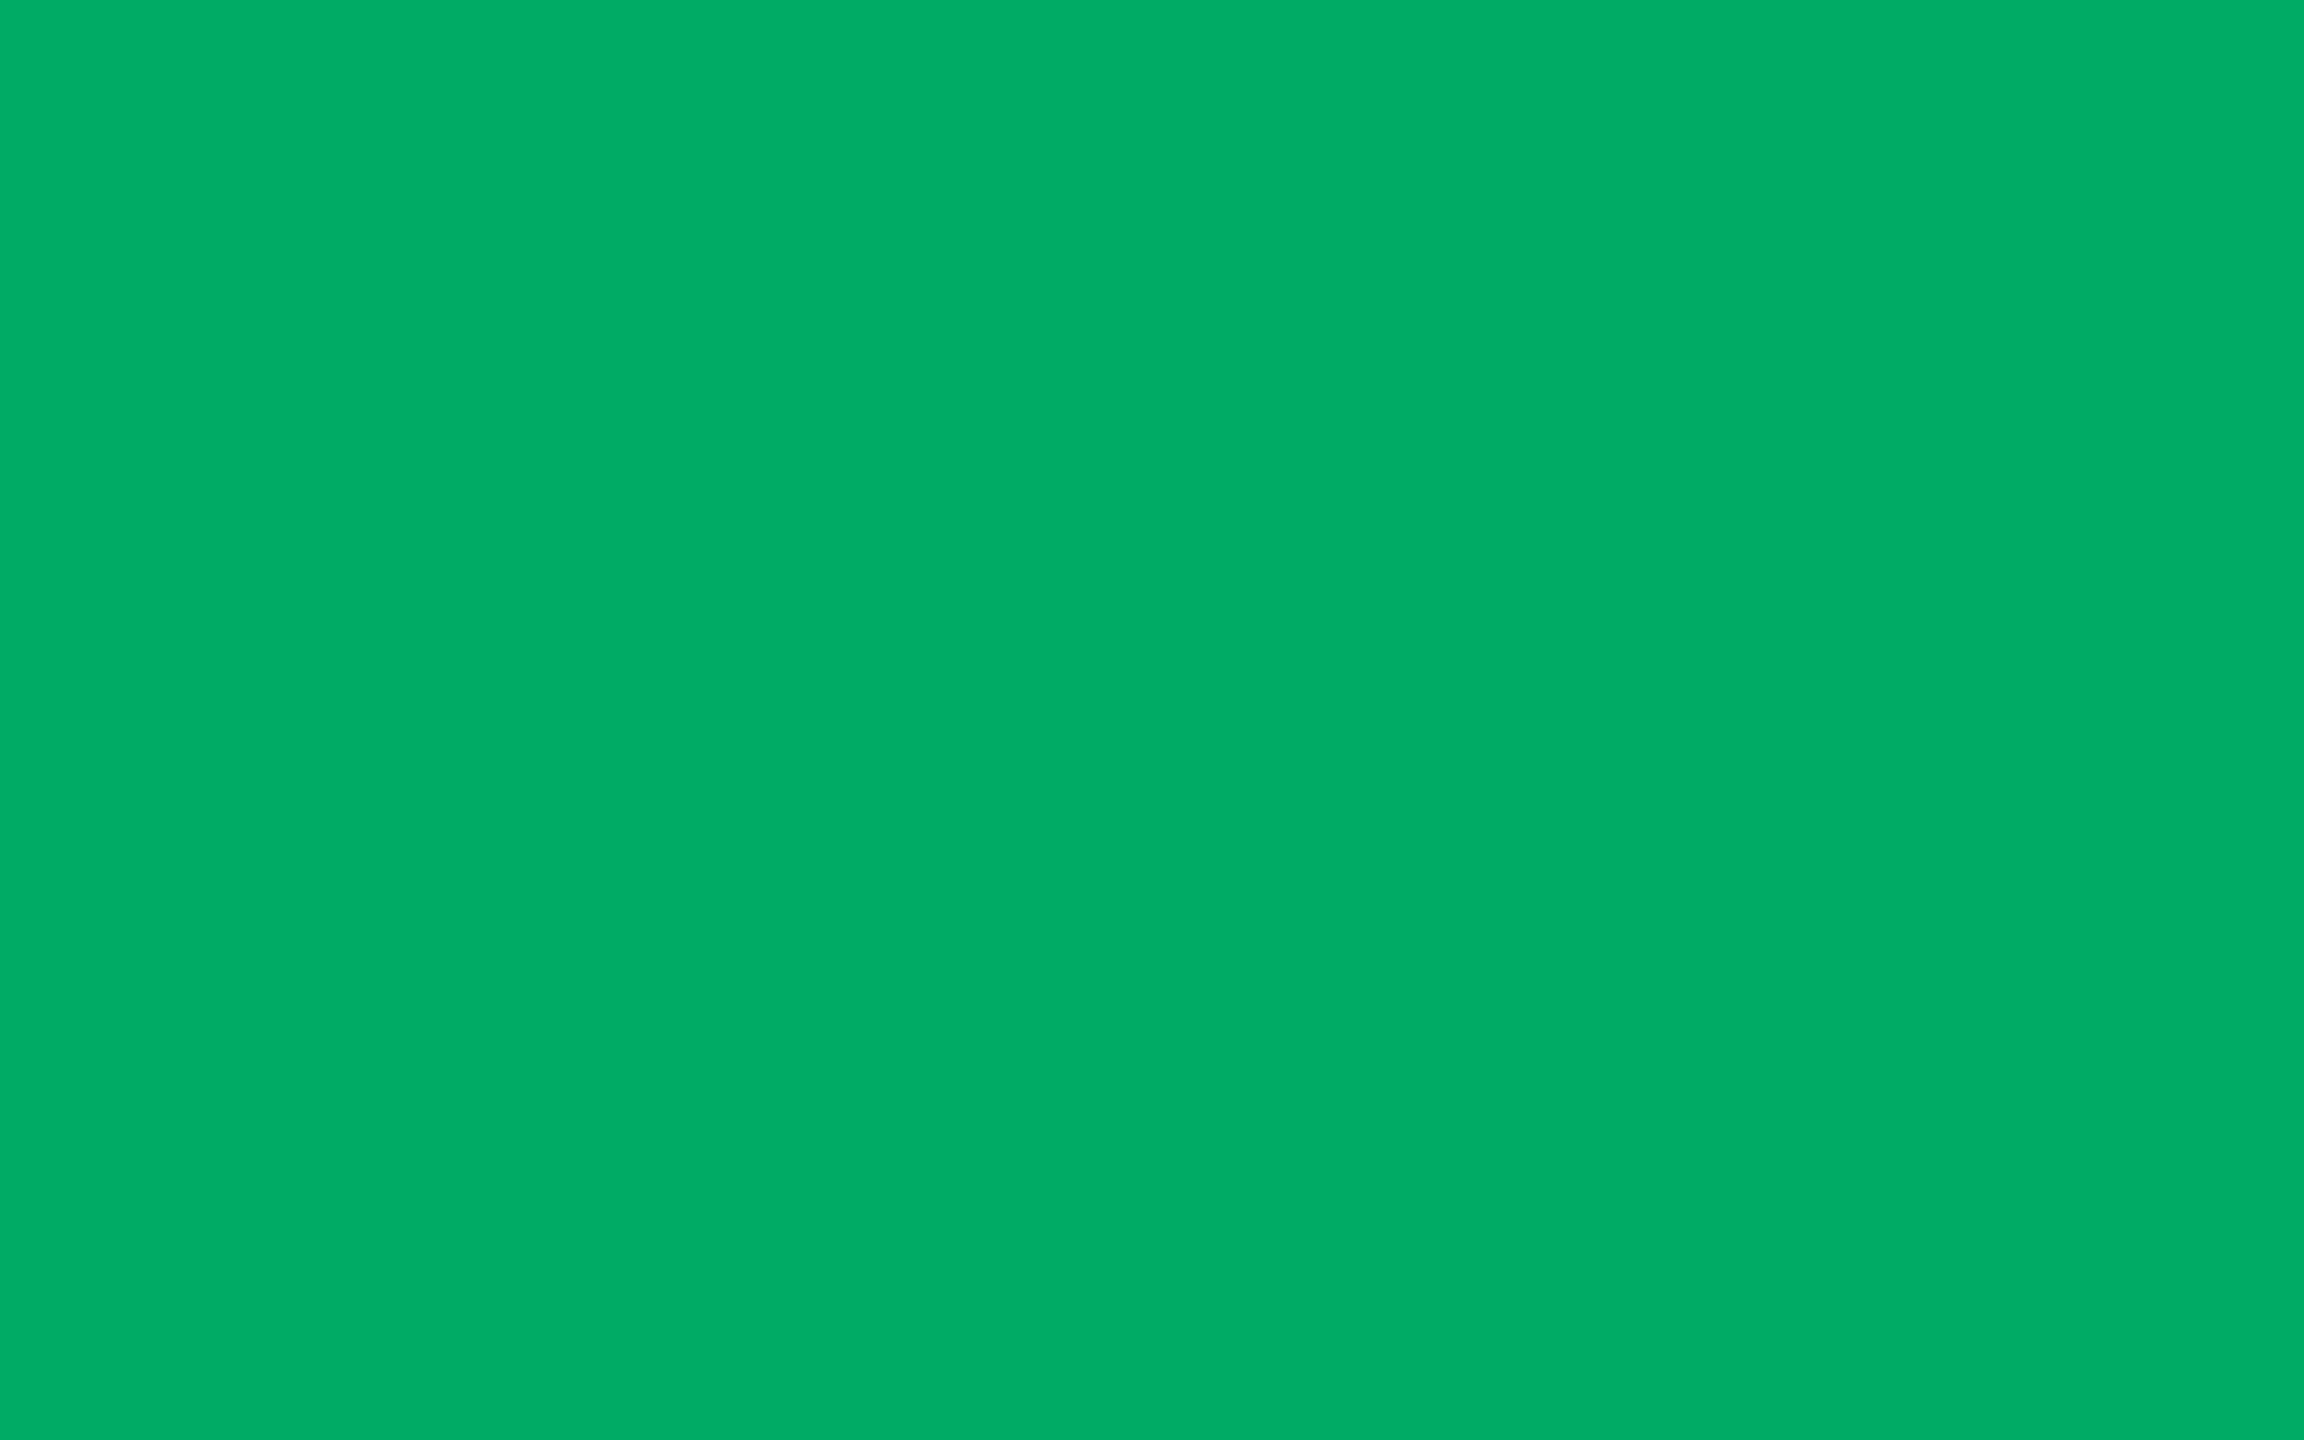 2304x1440 GO Green Solid Color Background